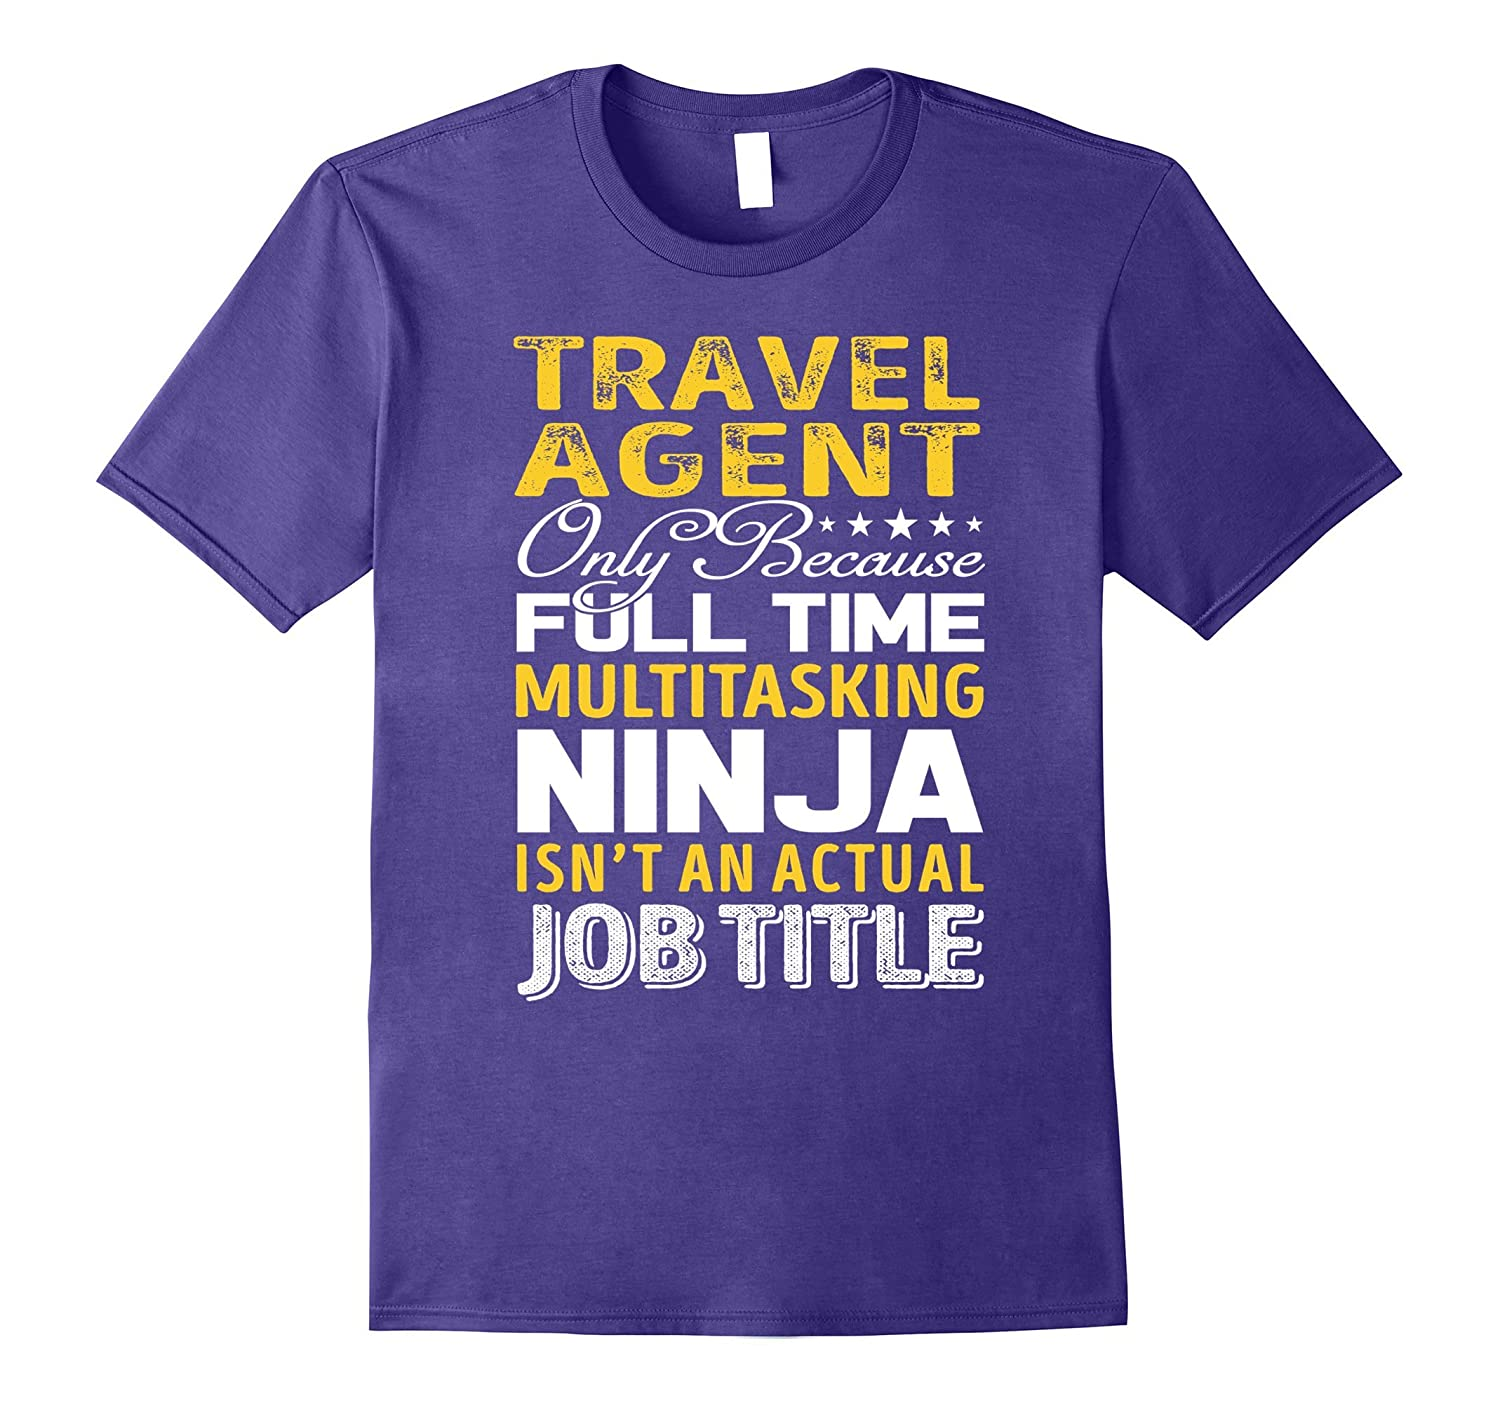 Travel Agent Is Not An Actual Job Title TShirt-TJ